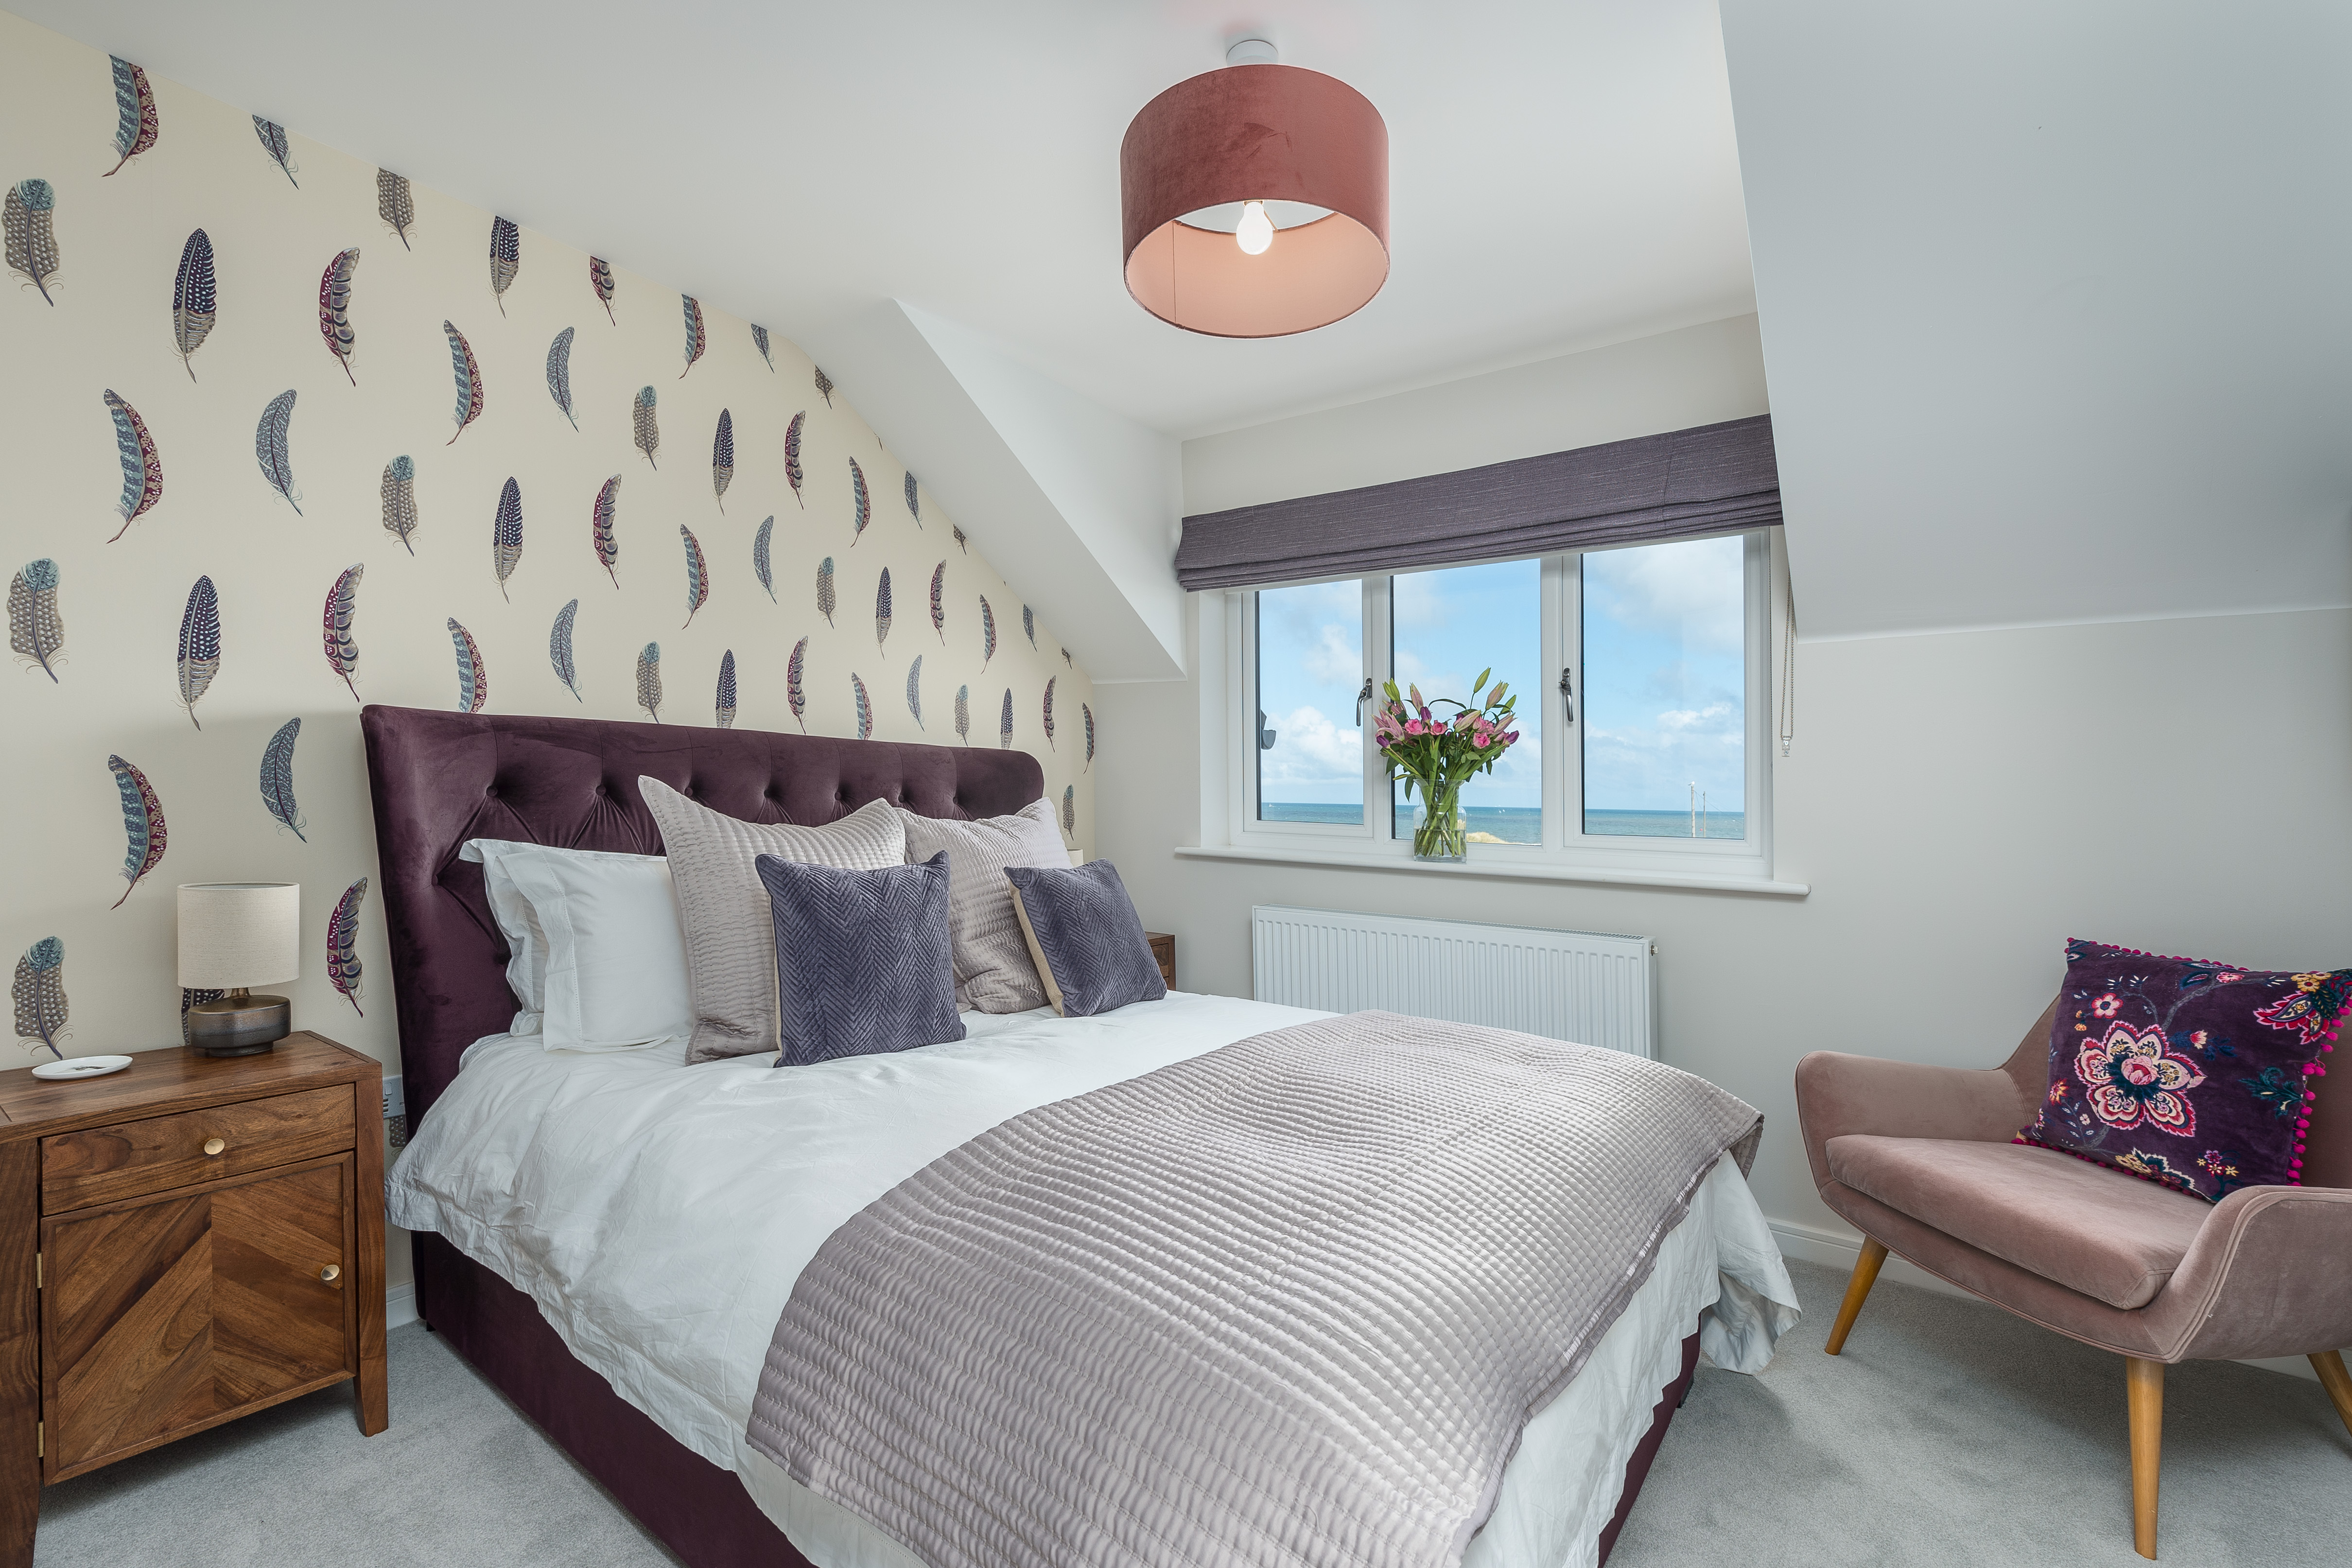 luxury holiday cottage in amble with sea views, amble cottage with sea views, amble holiday home sea views for families